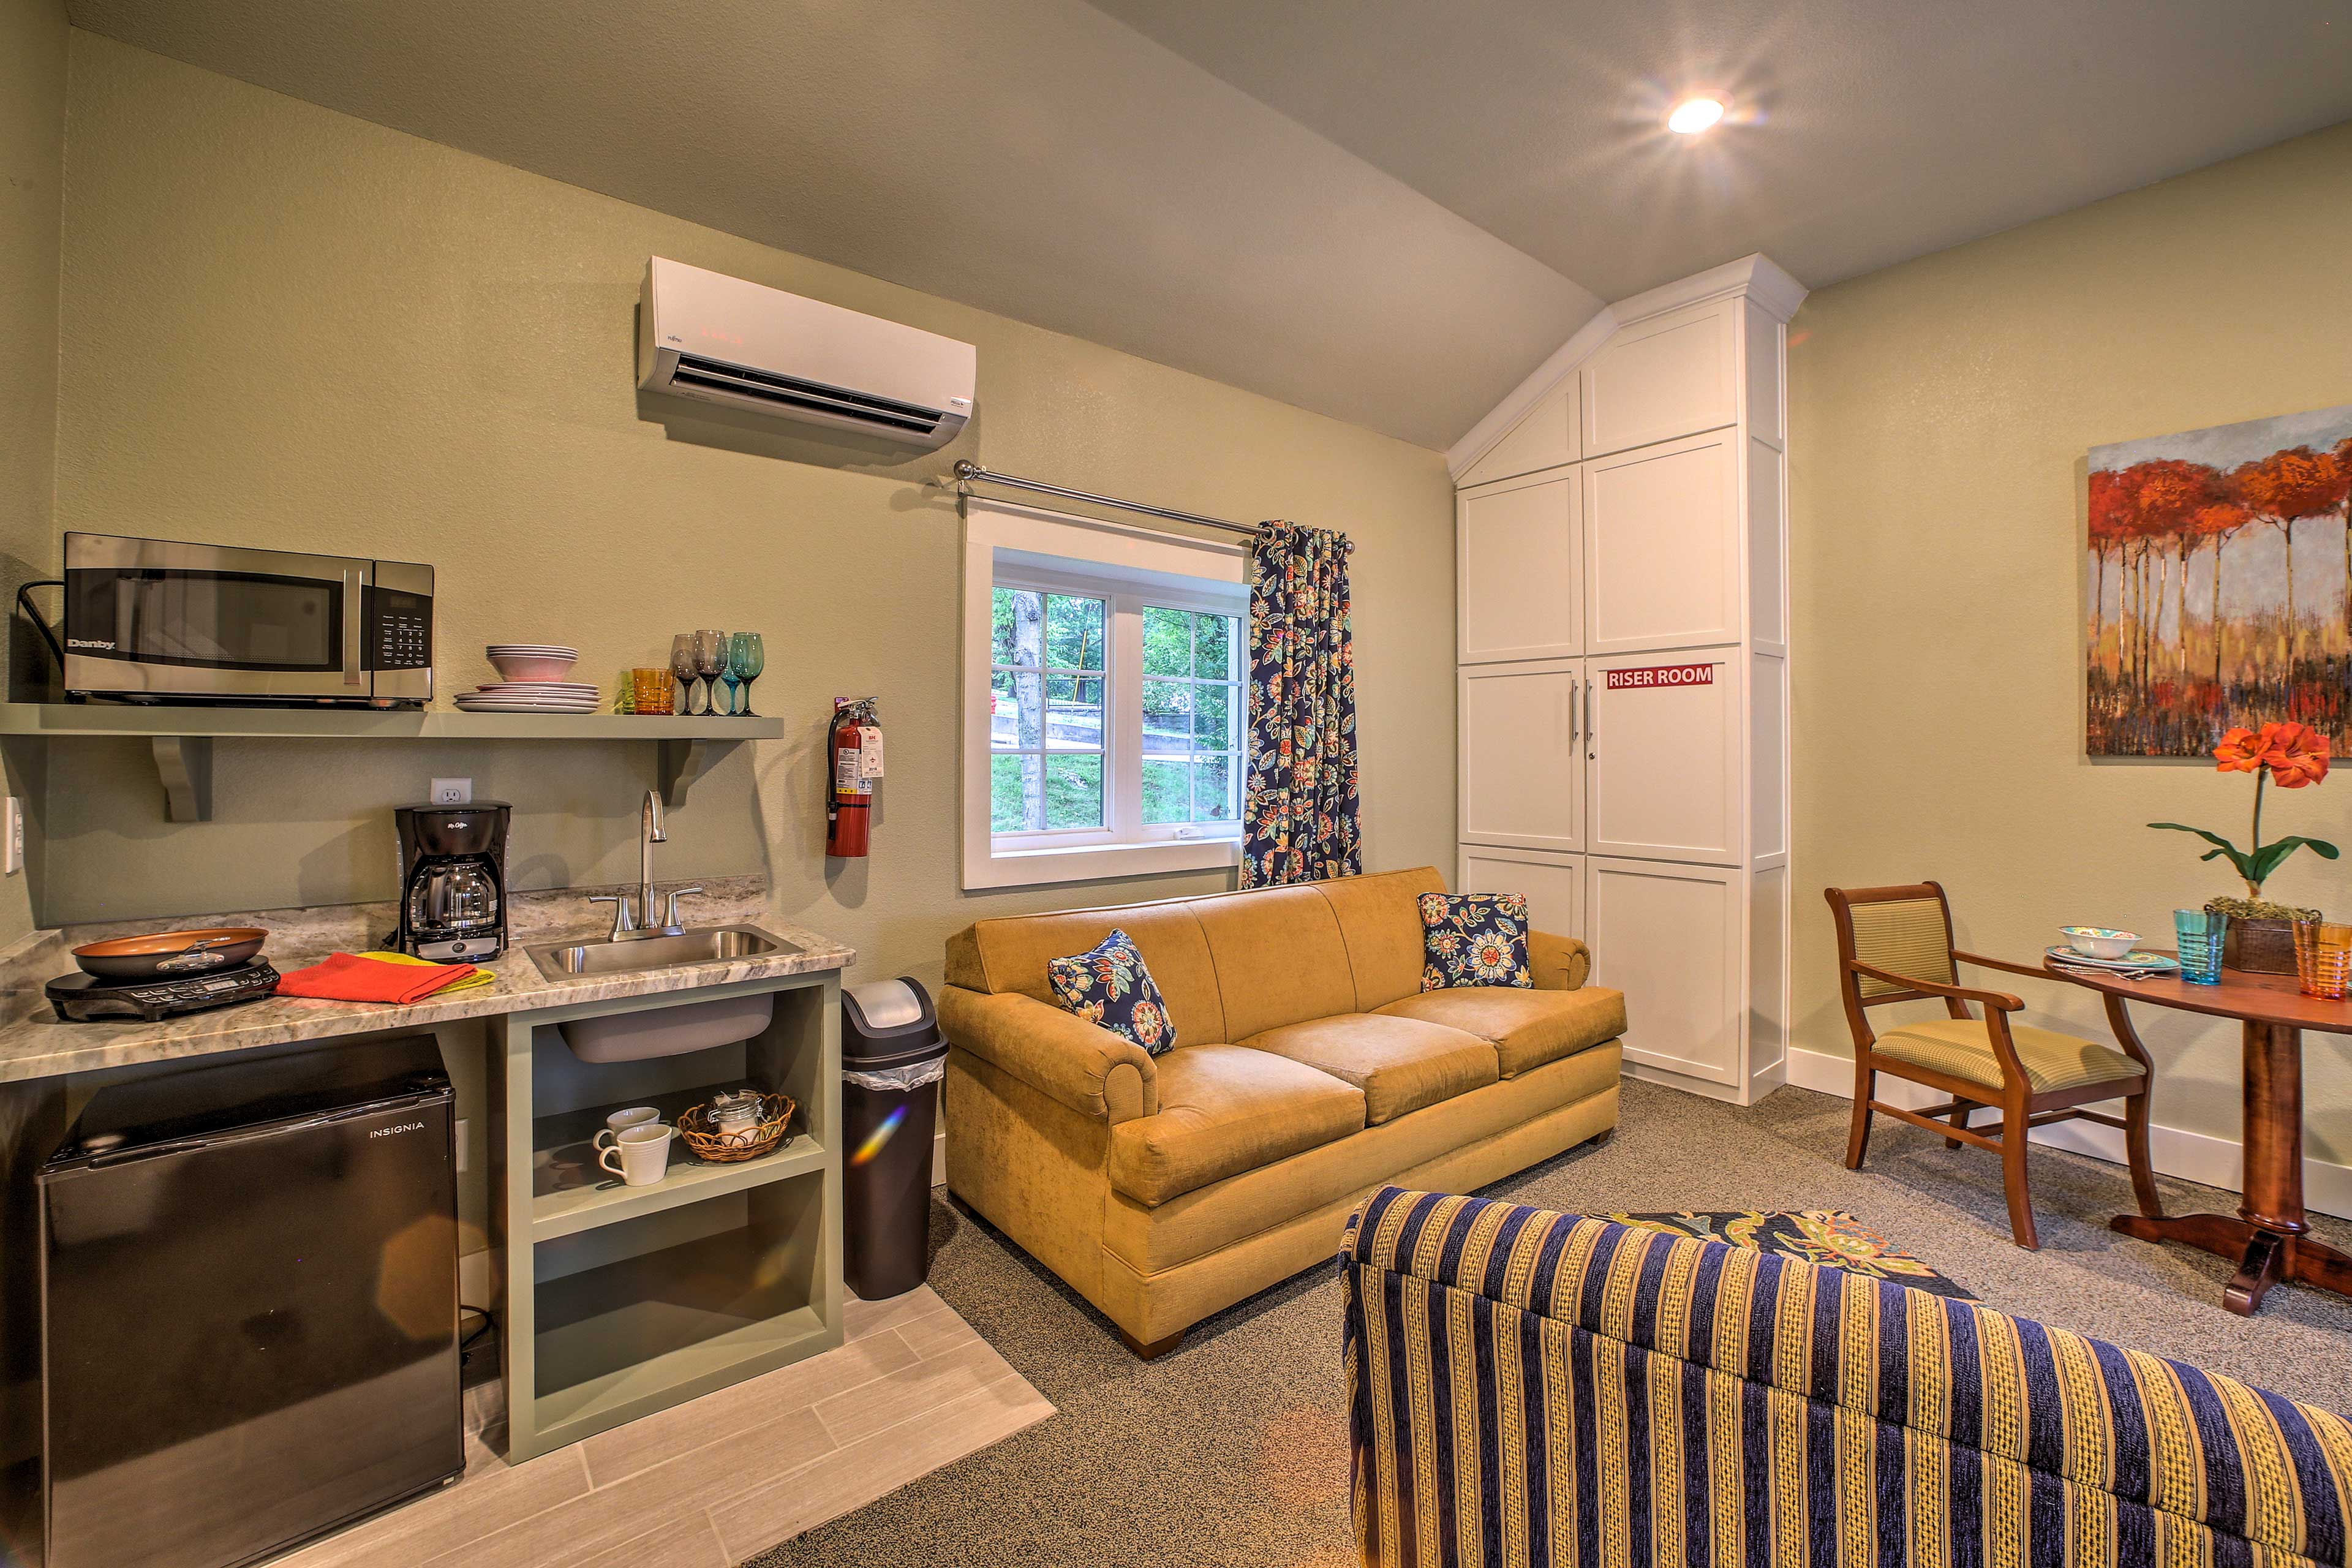 There's plenty of natural sunlight that enters the property.